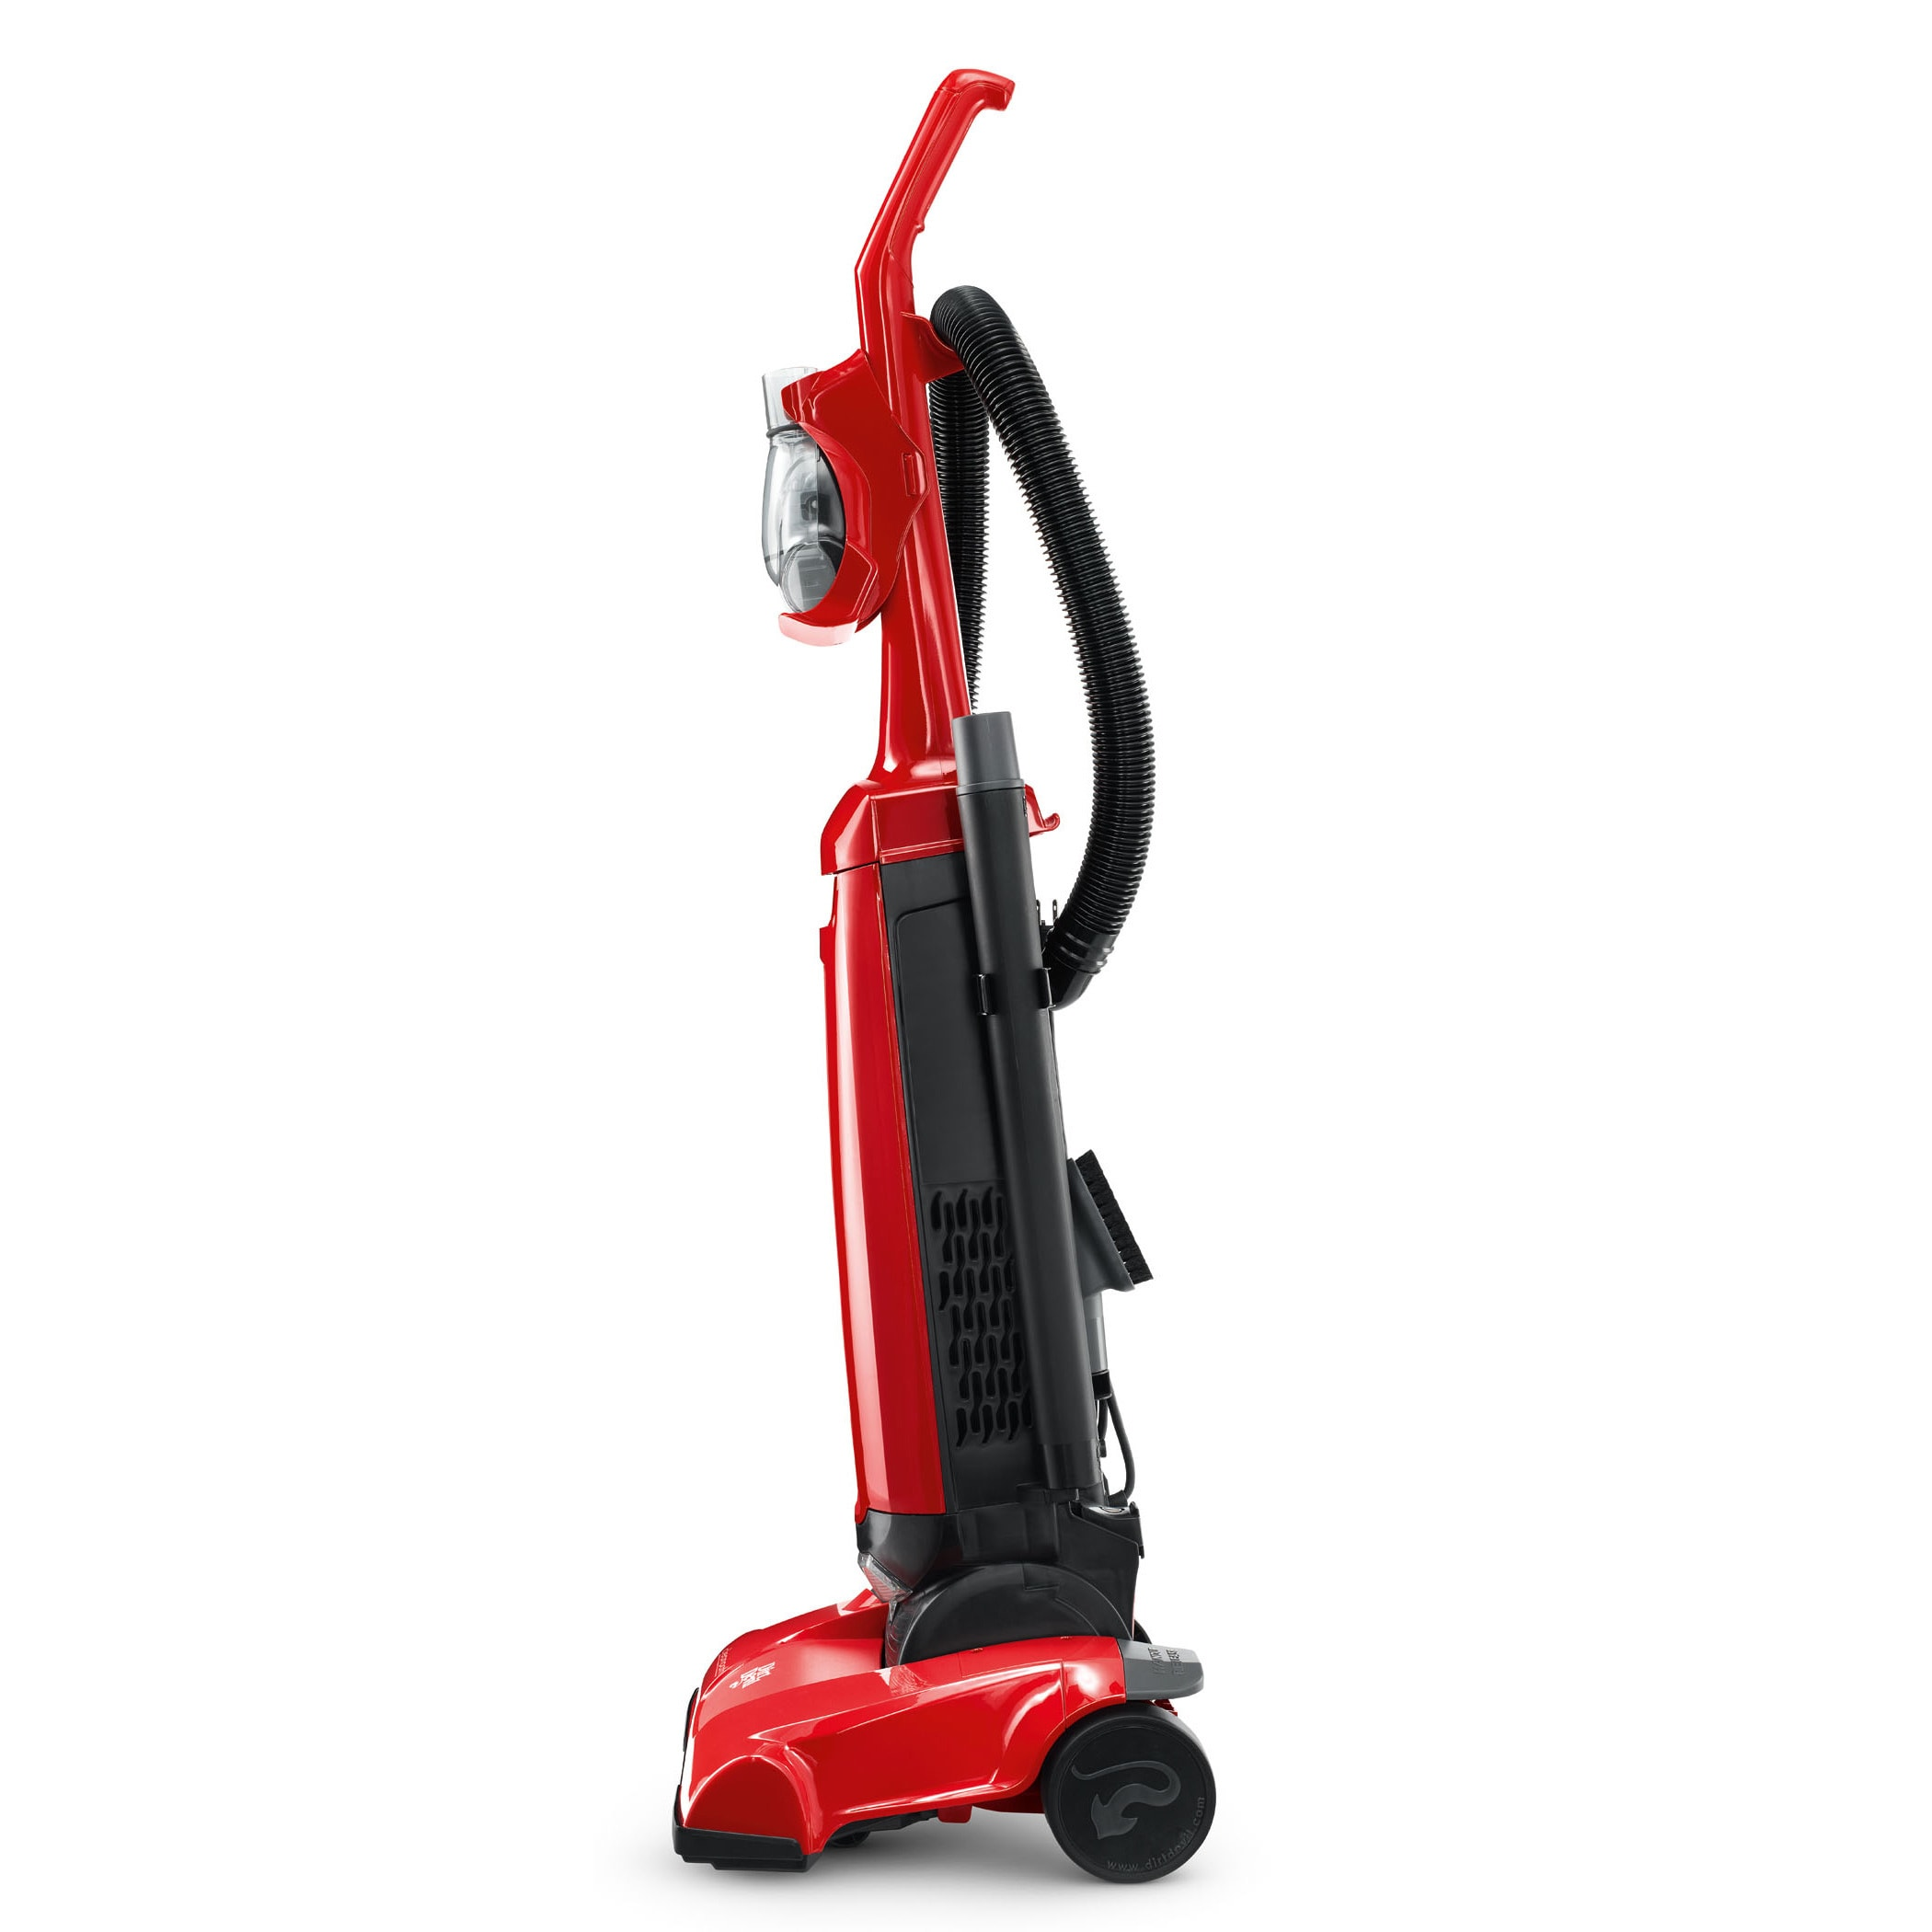 Dirt Devil Ud30010 Featherlite Bagged Upright Vacuum Free Shipping Today 9316798